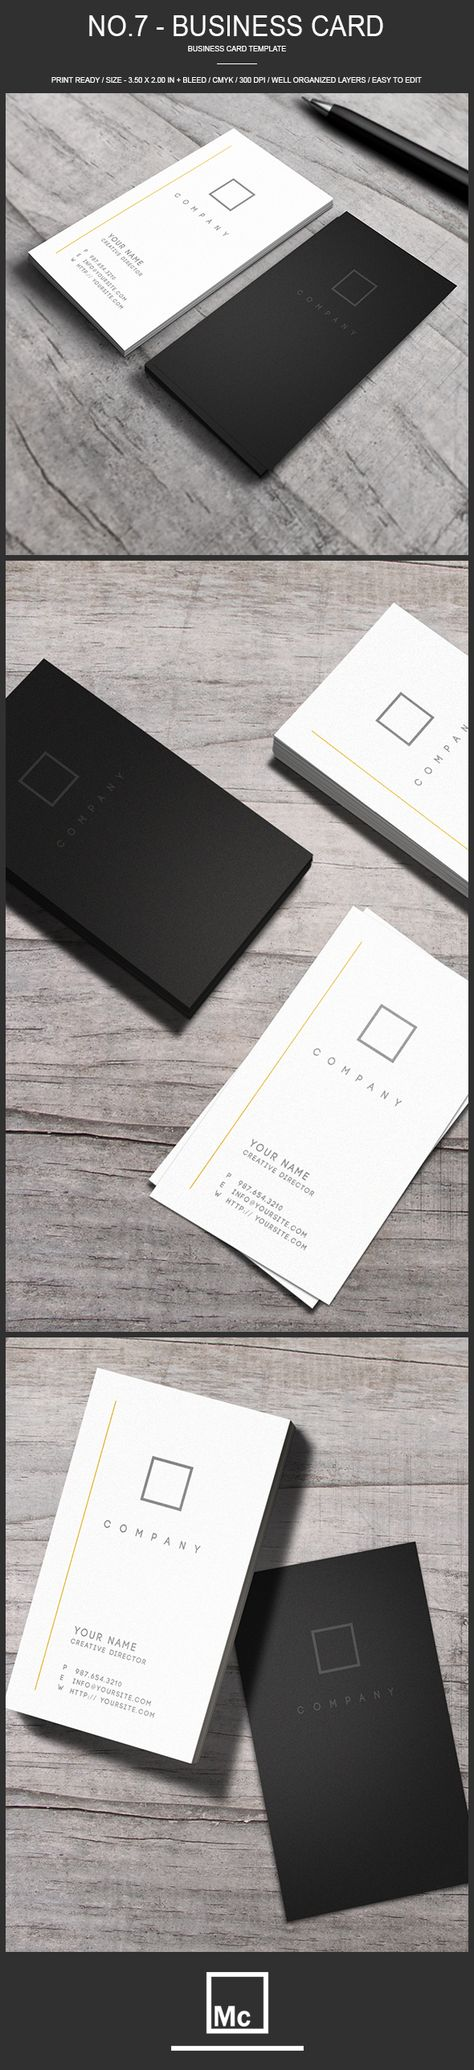 21 best Business Card Ideas images on Pinterest | Business cards ...